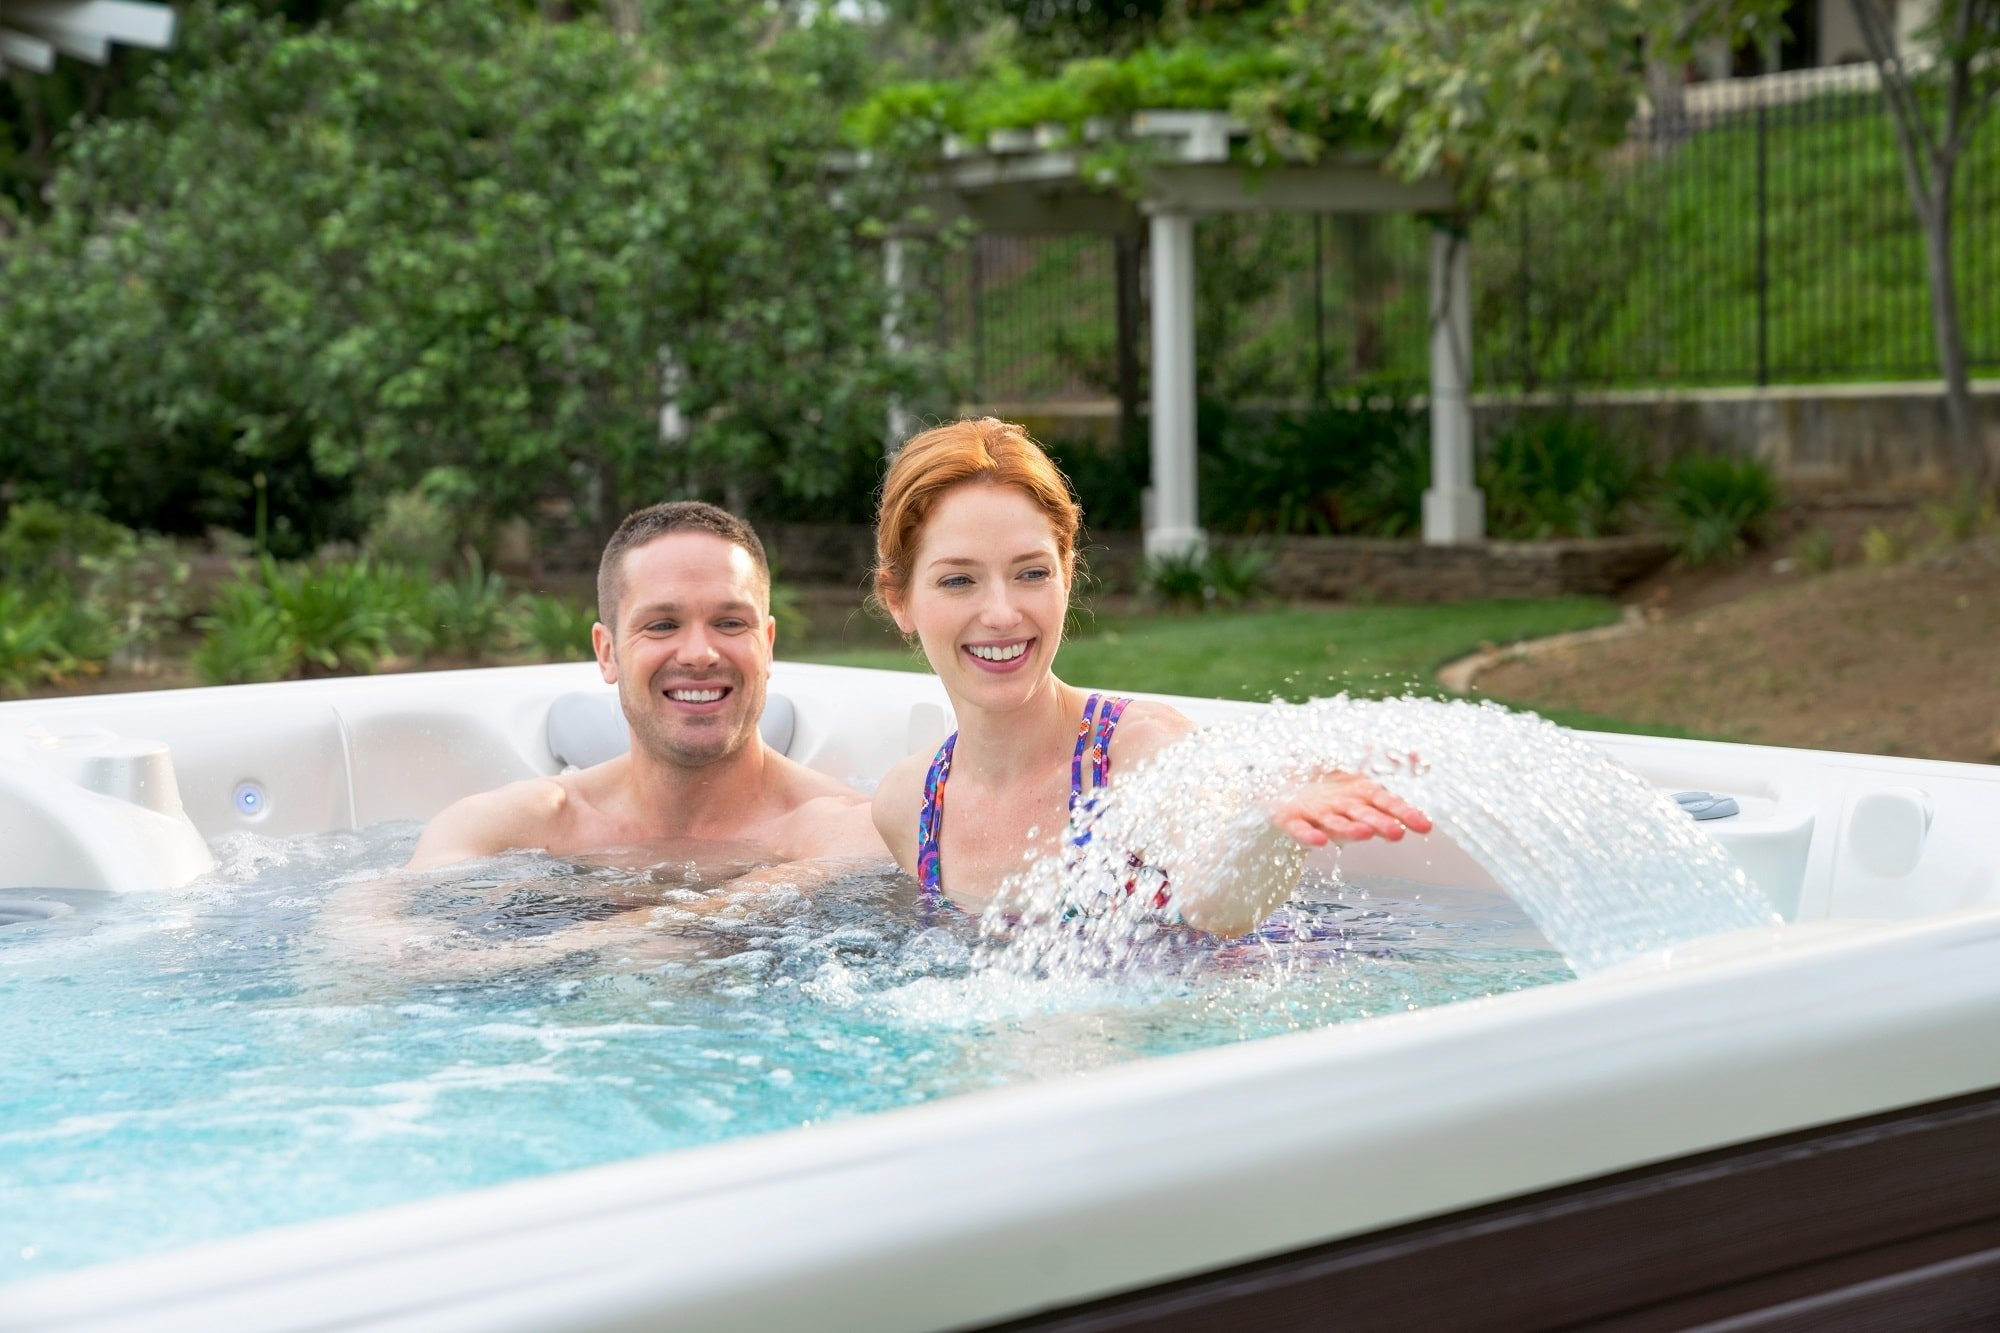 Luxury hot tub accessories enhance your enjoyment of the hot tub every time you use it.